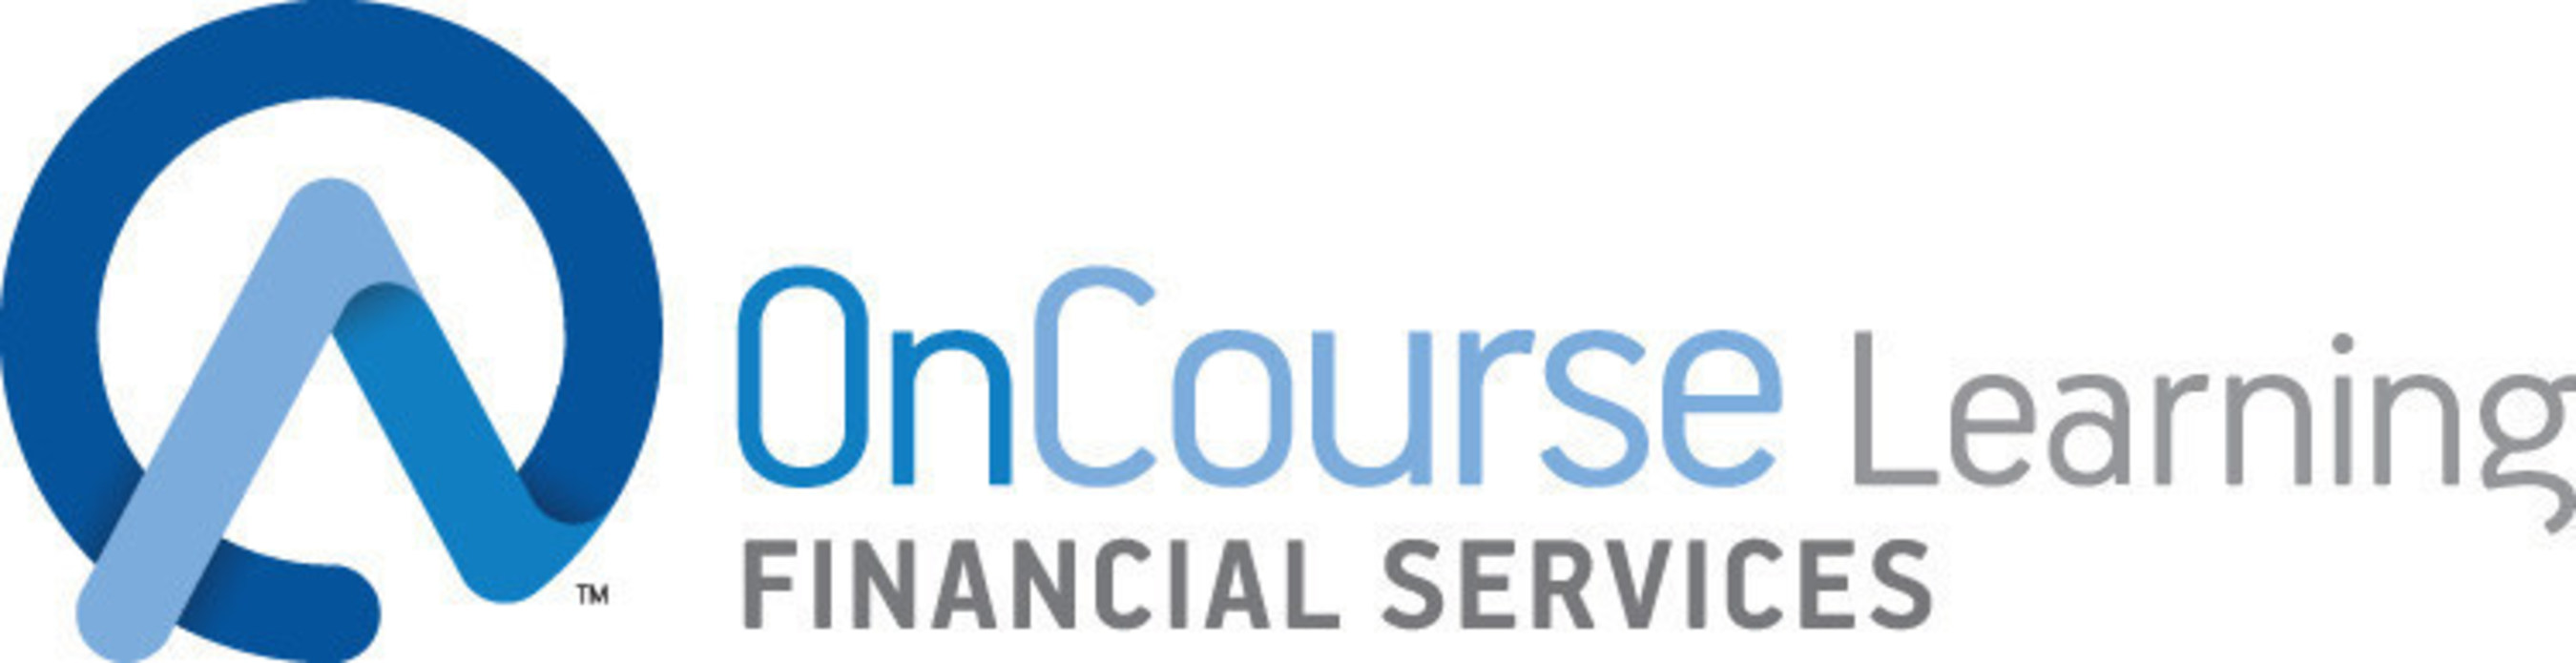 OnCourse Learning Financial Services Logo